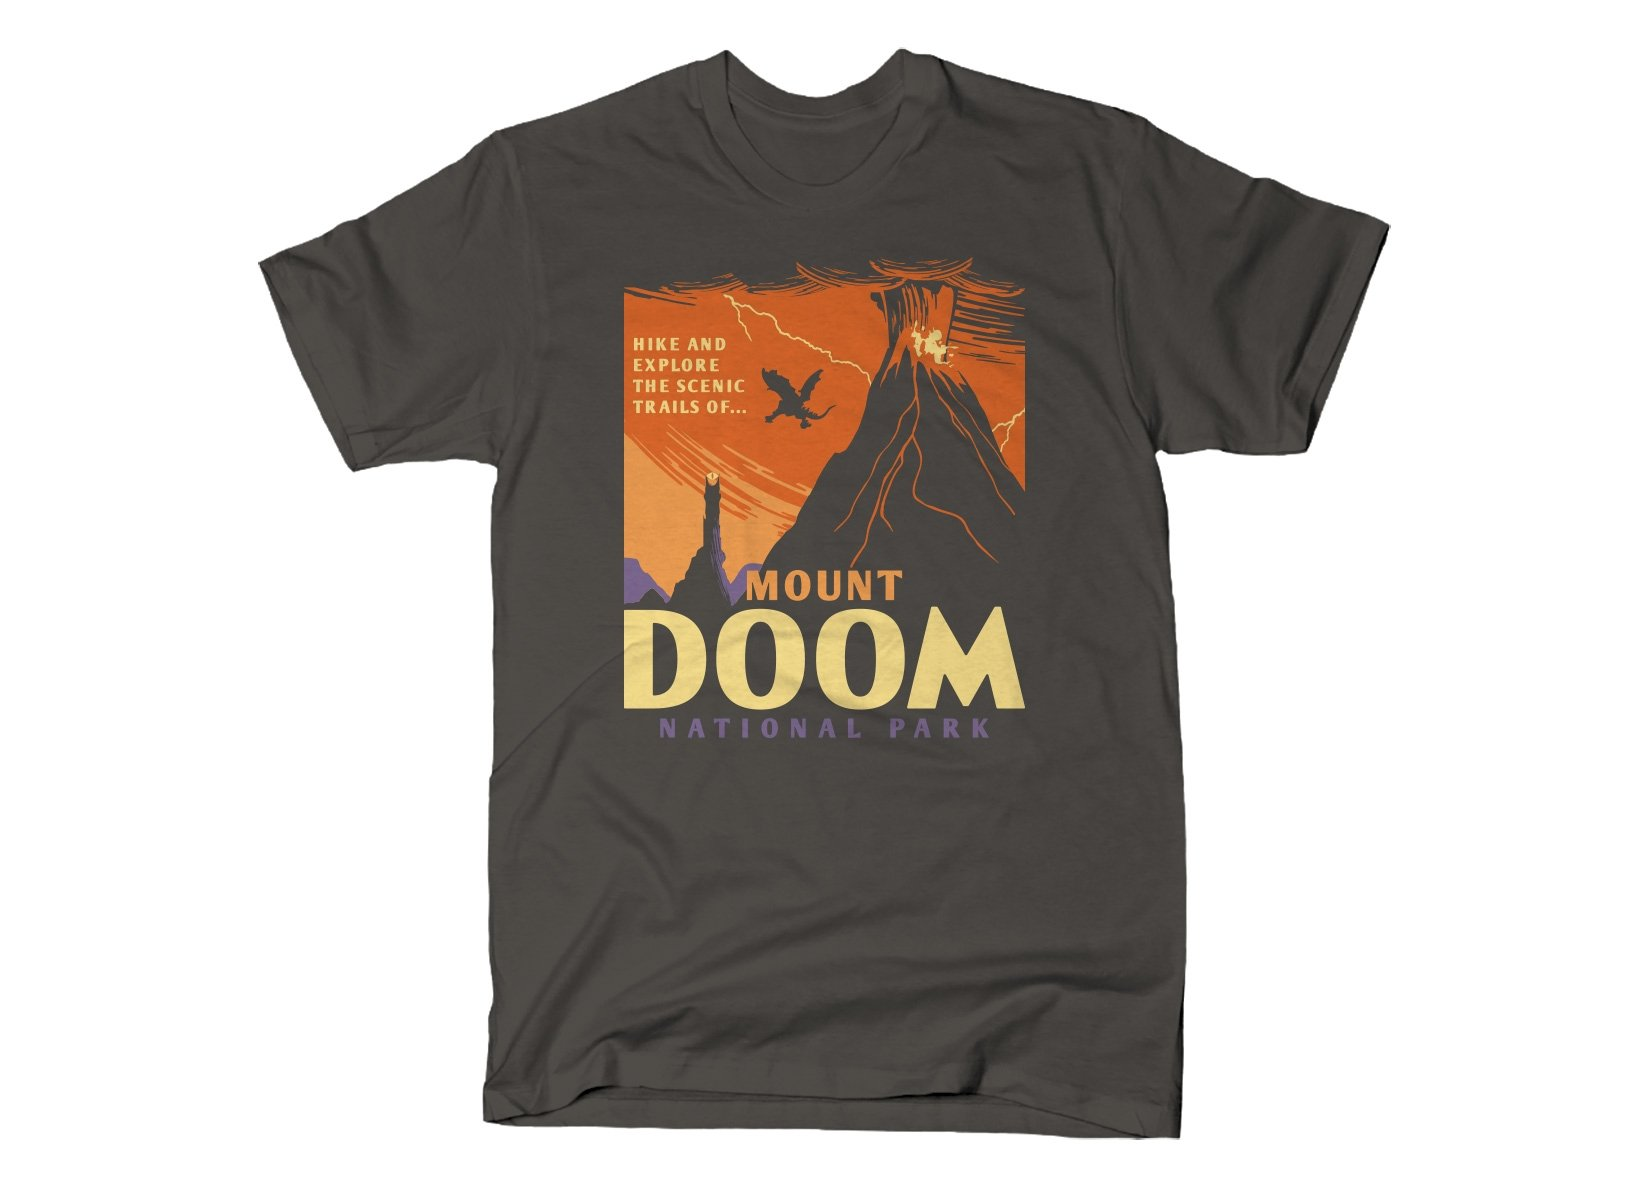 Mount Doom National Park on Mens T-Shirt